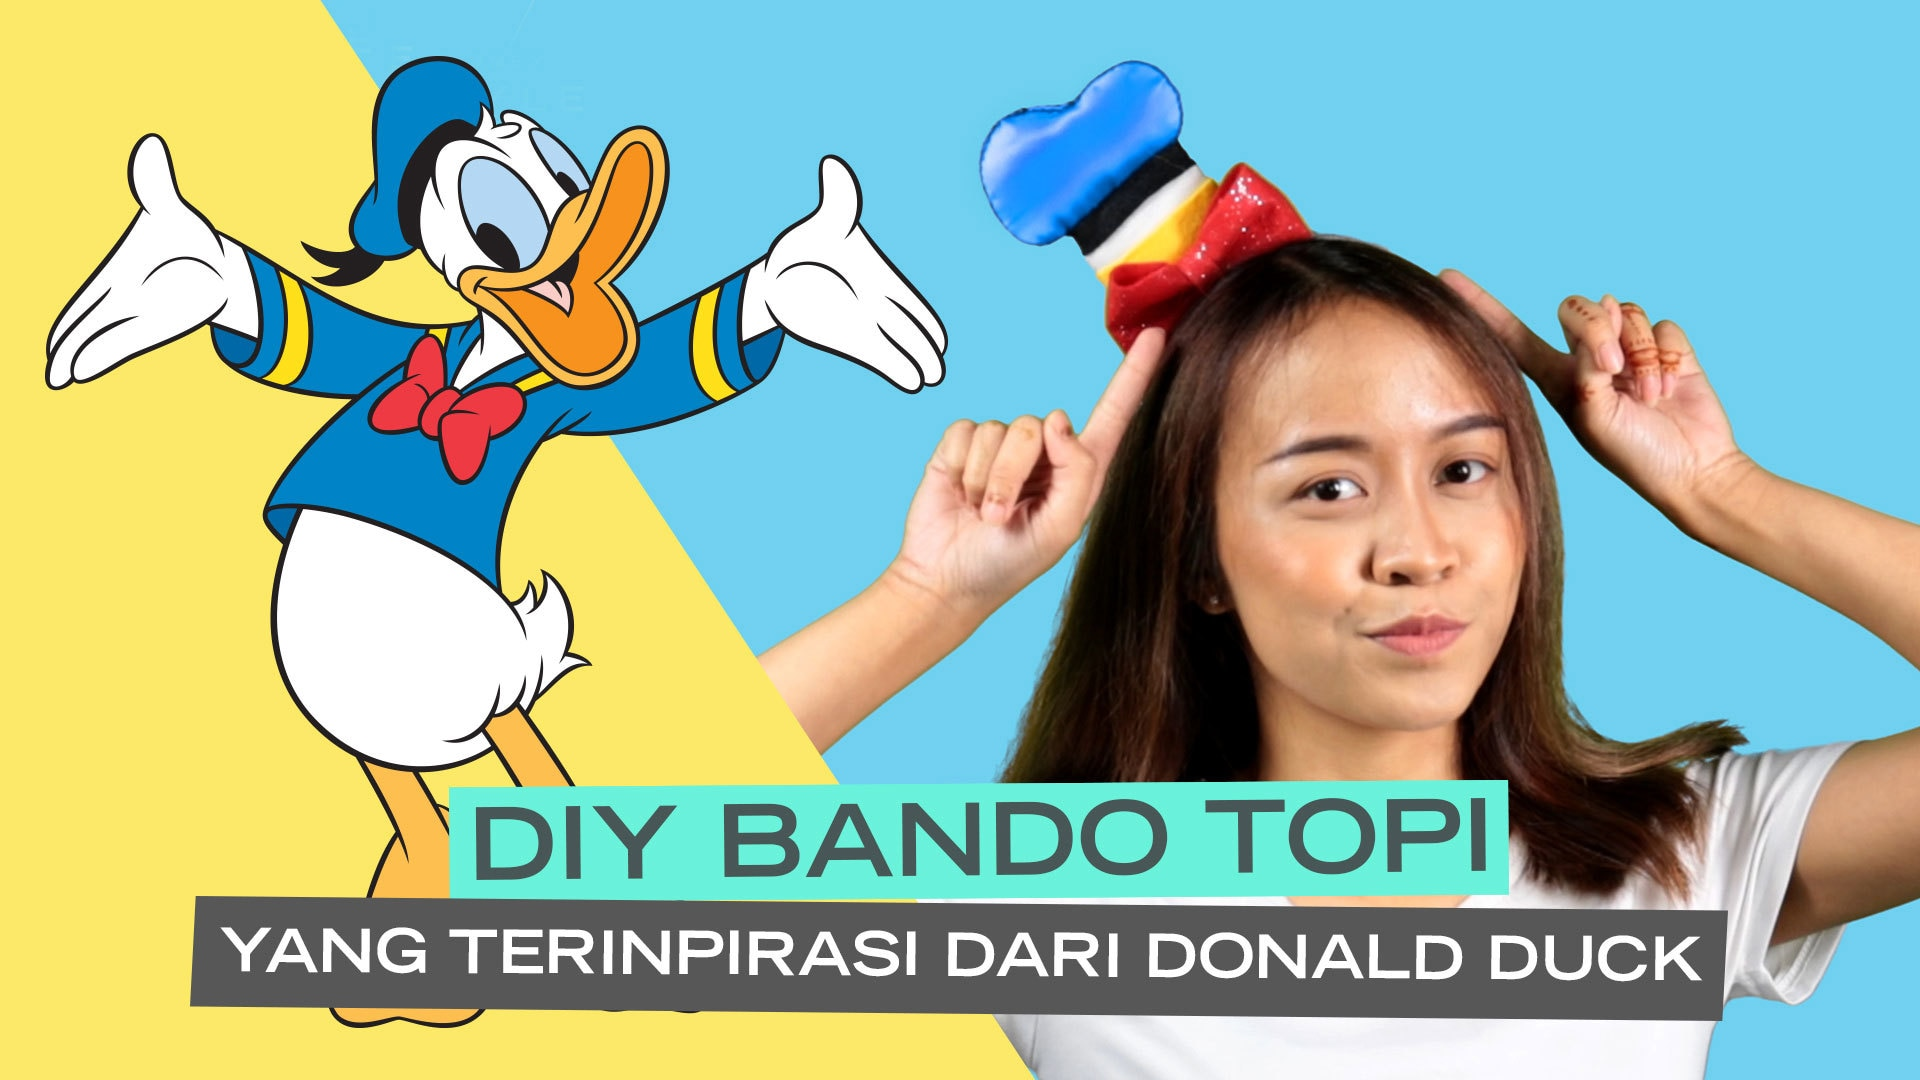 Disney Style: Donald Duck DIY hat headband